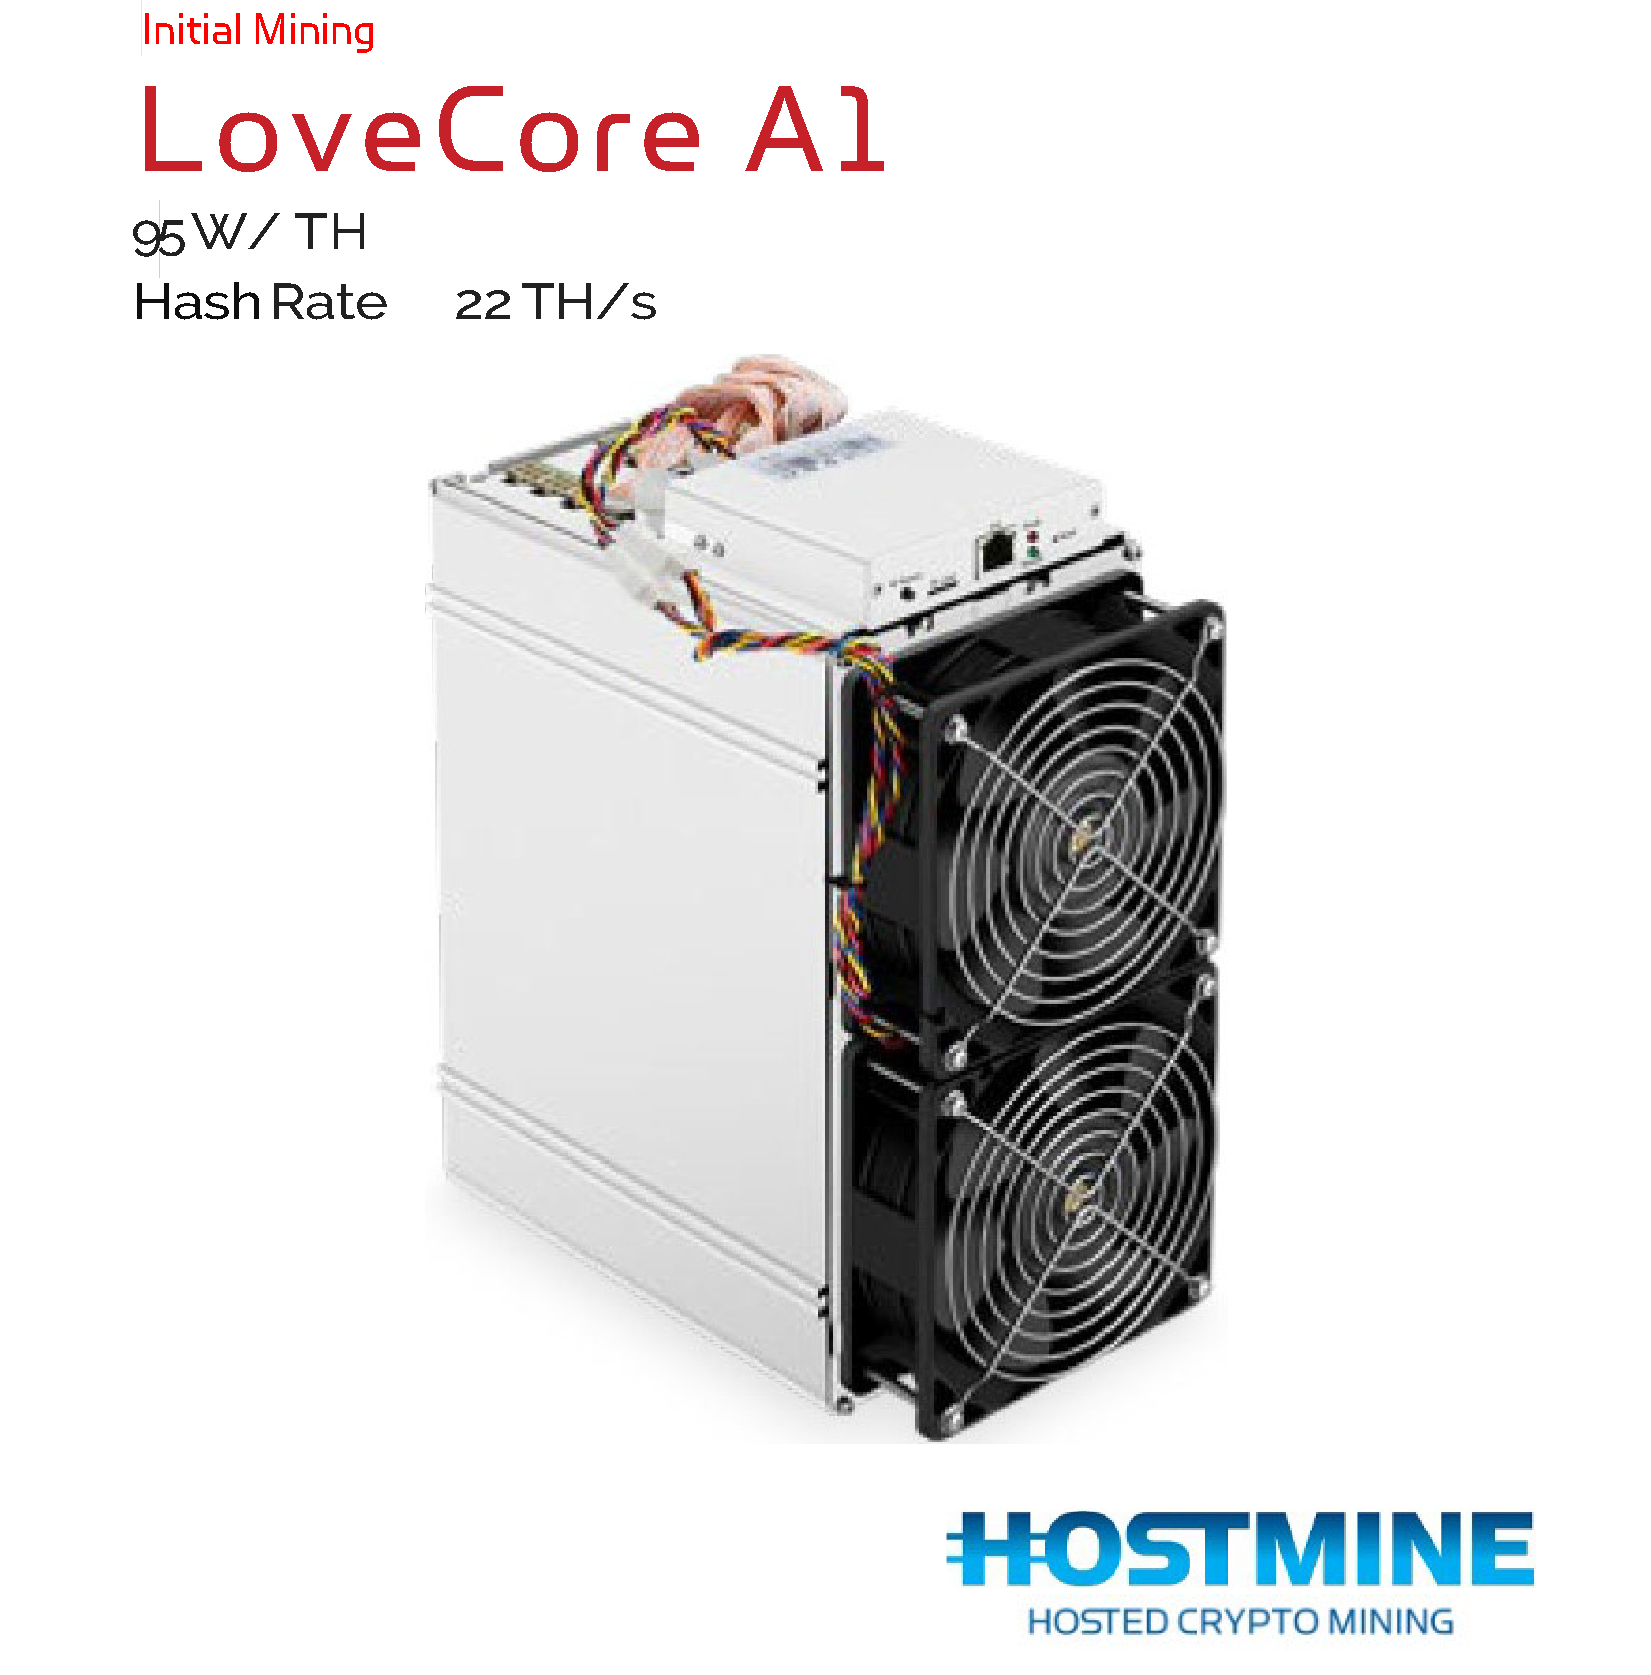 LoveCore A1 22TH/s | HOSTMINE